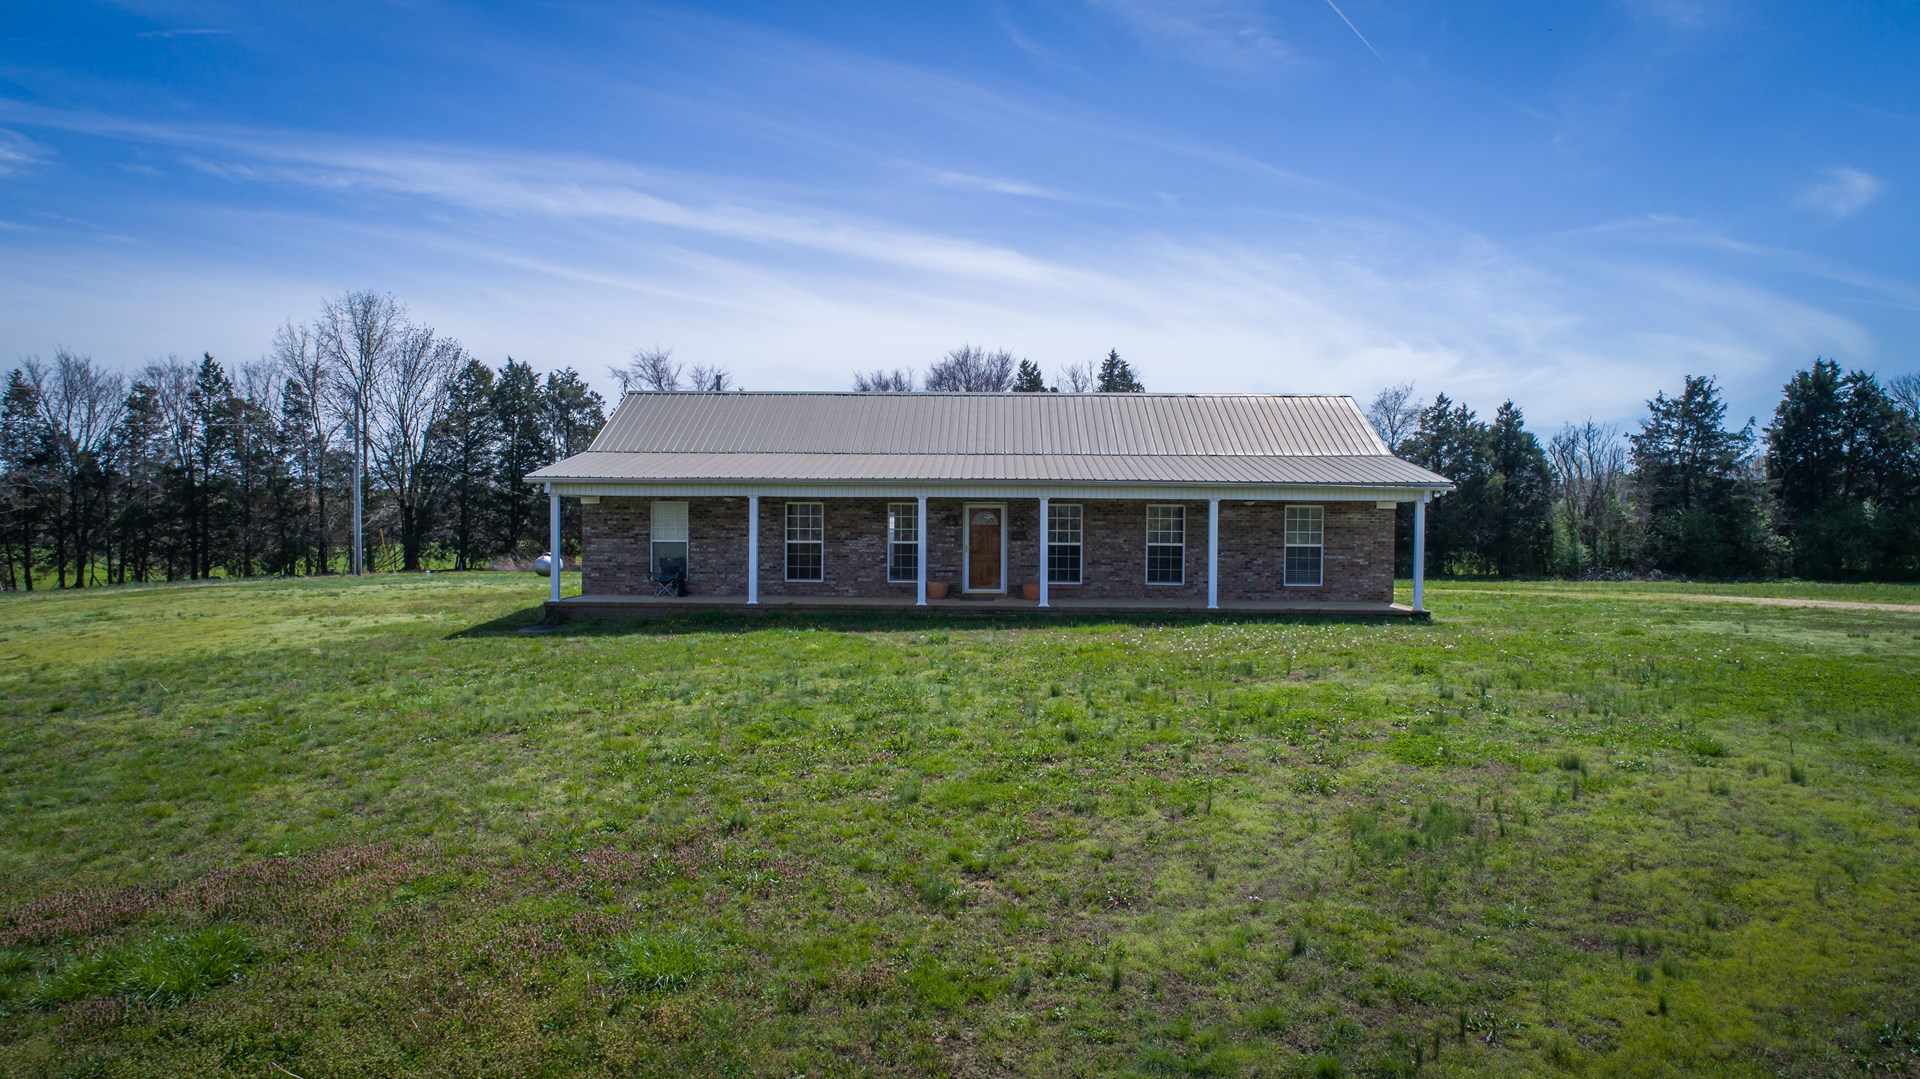 FARM IN TENNESSEE FOR SALE W/ CROP LAND, BARN, RIDING ARENA